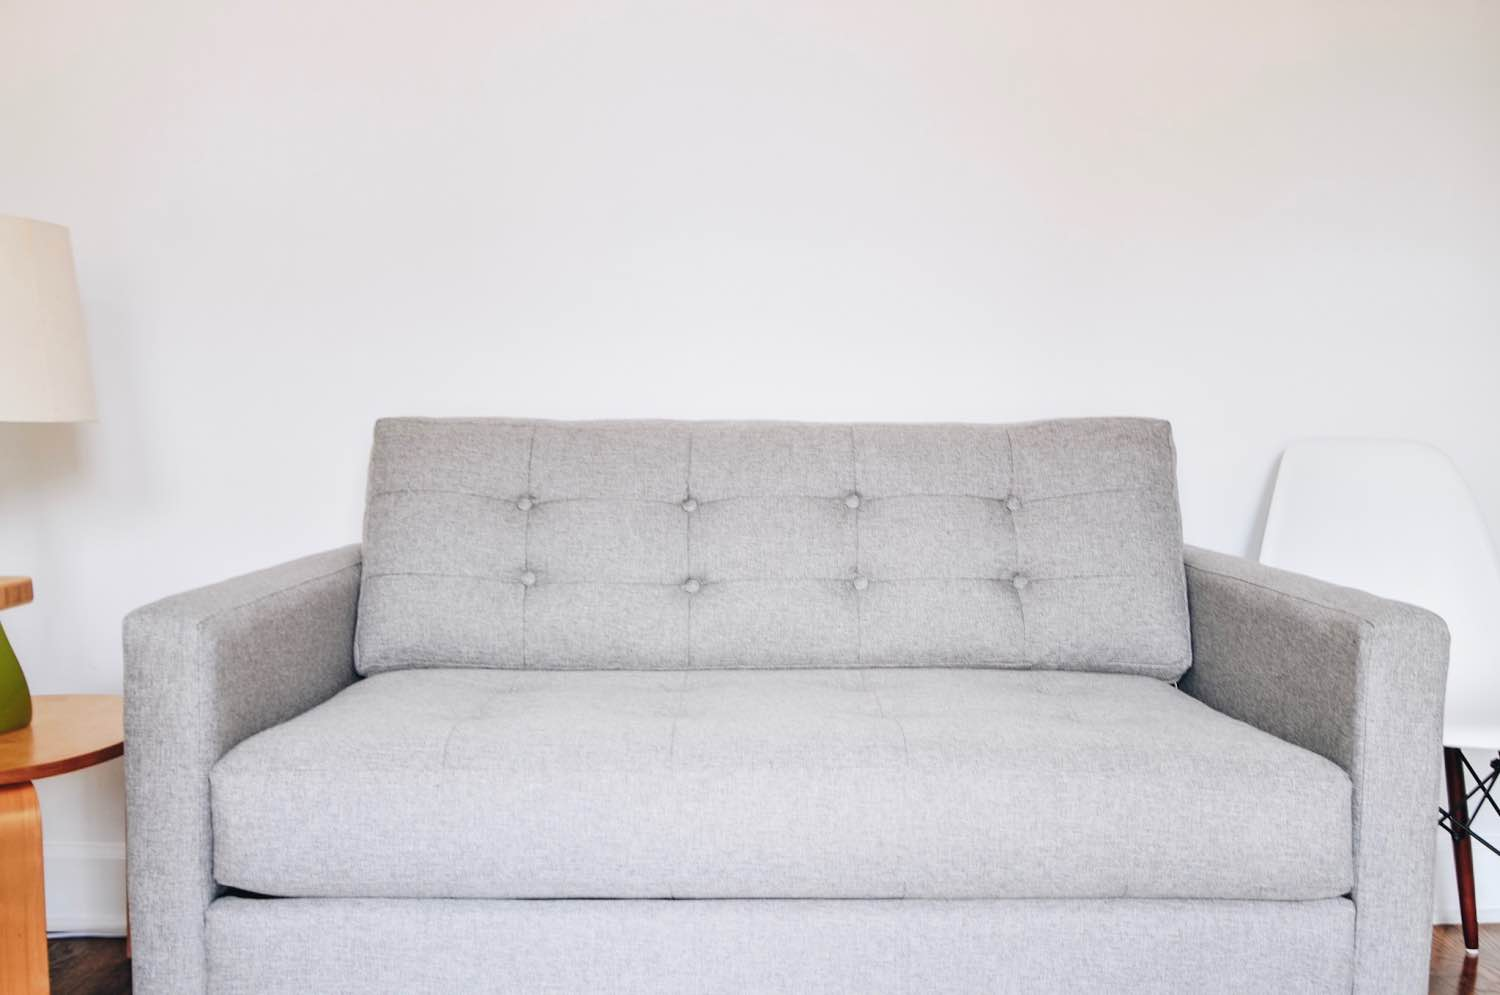 sofa without society6 pillows pop shop america